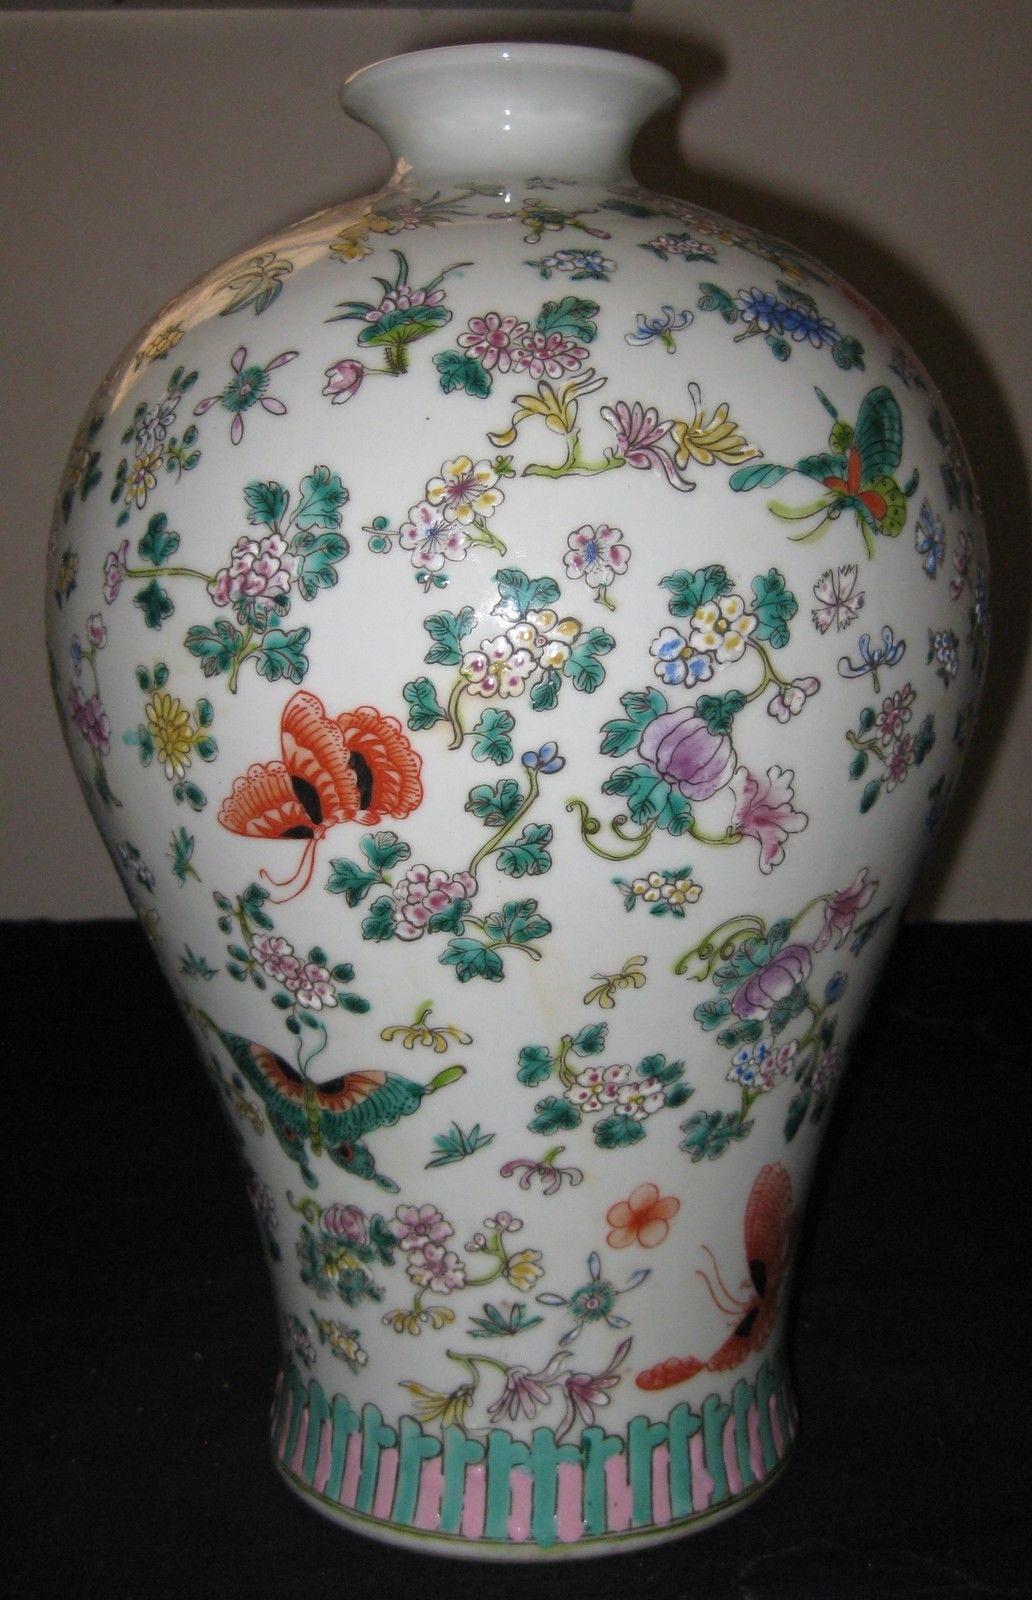 ANTIQUE CHINESE PORCELAIN BUTTERFLY FLOWER VASE,19TH C,QING DYNASTY,KANGXI MARK.